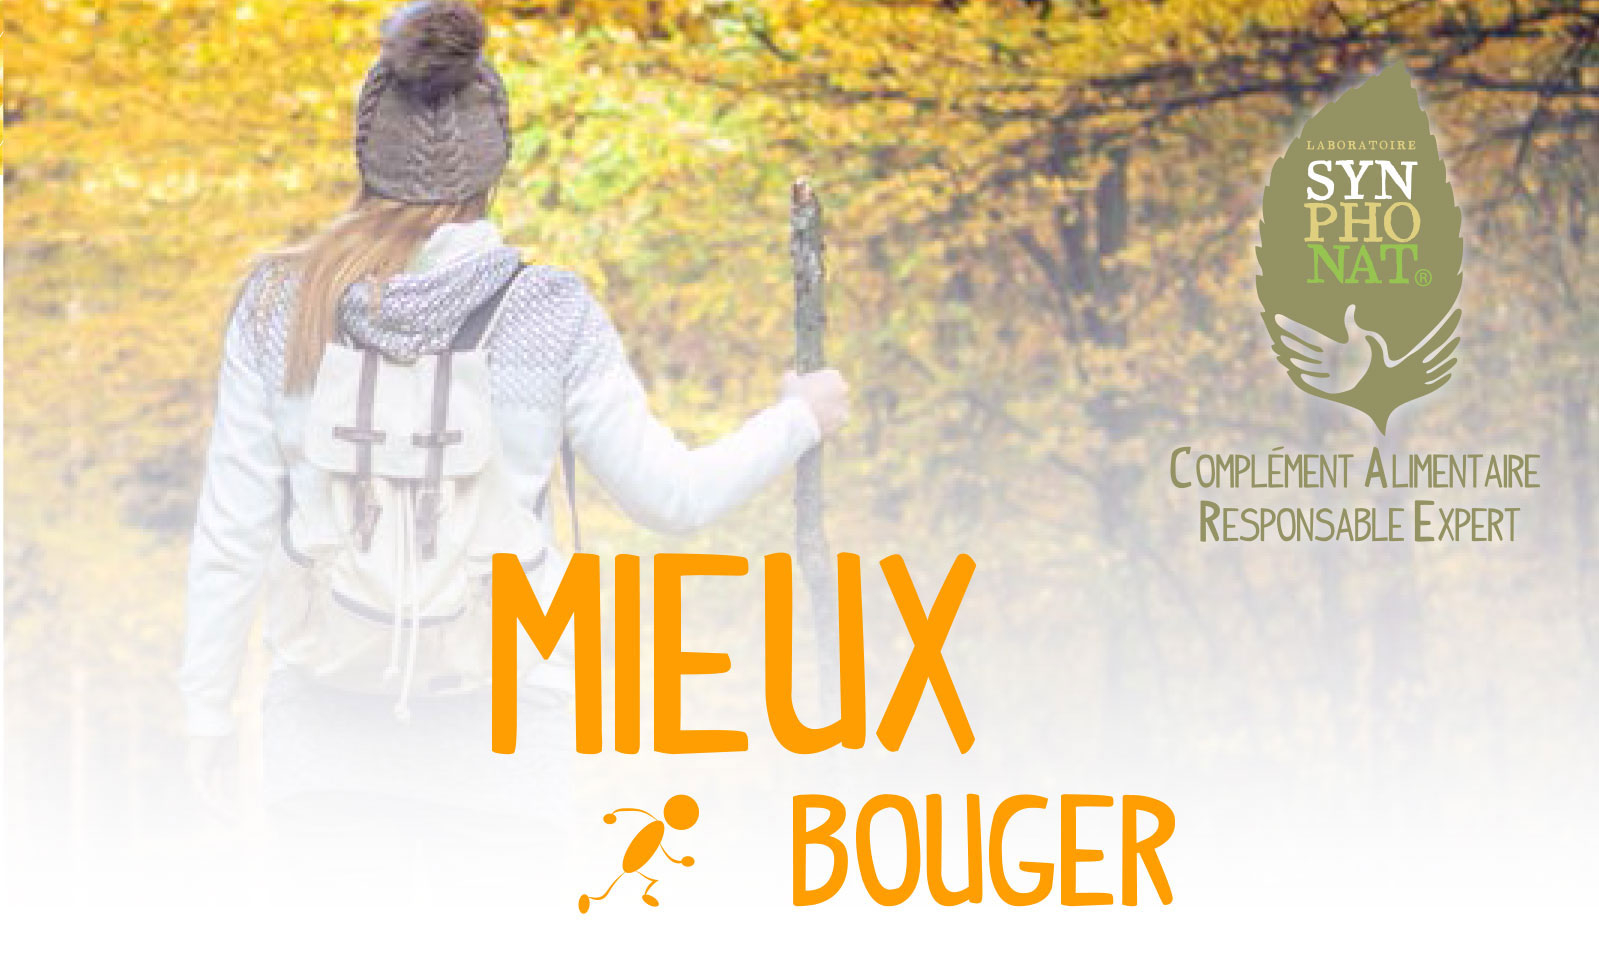 mieux bouger